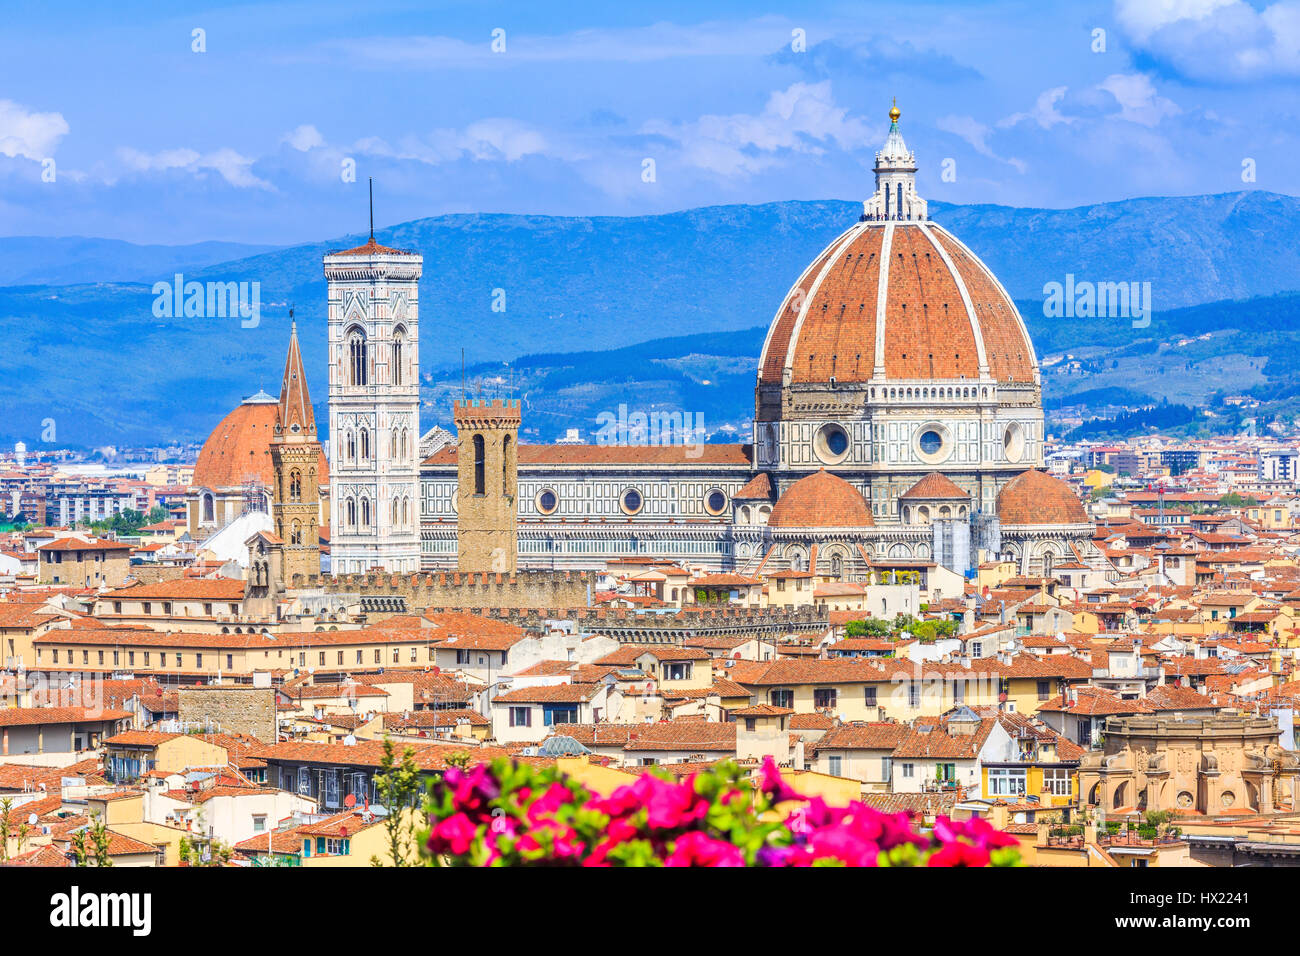 Florence, Italy. View of the old town from Piazzale Michelangelo. - Stock Image